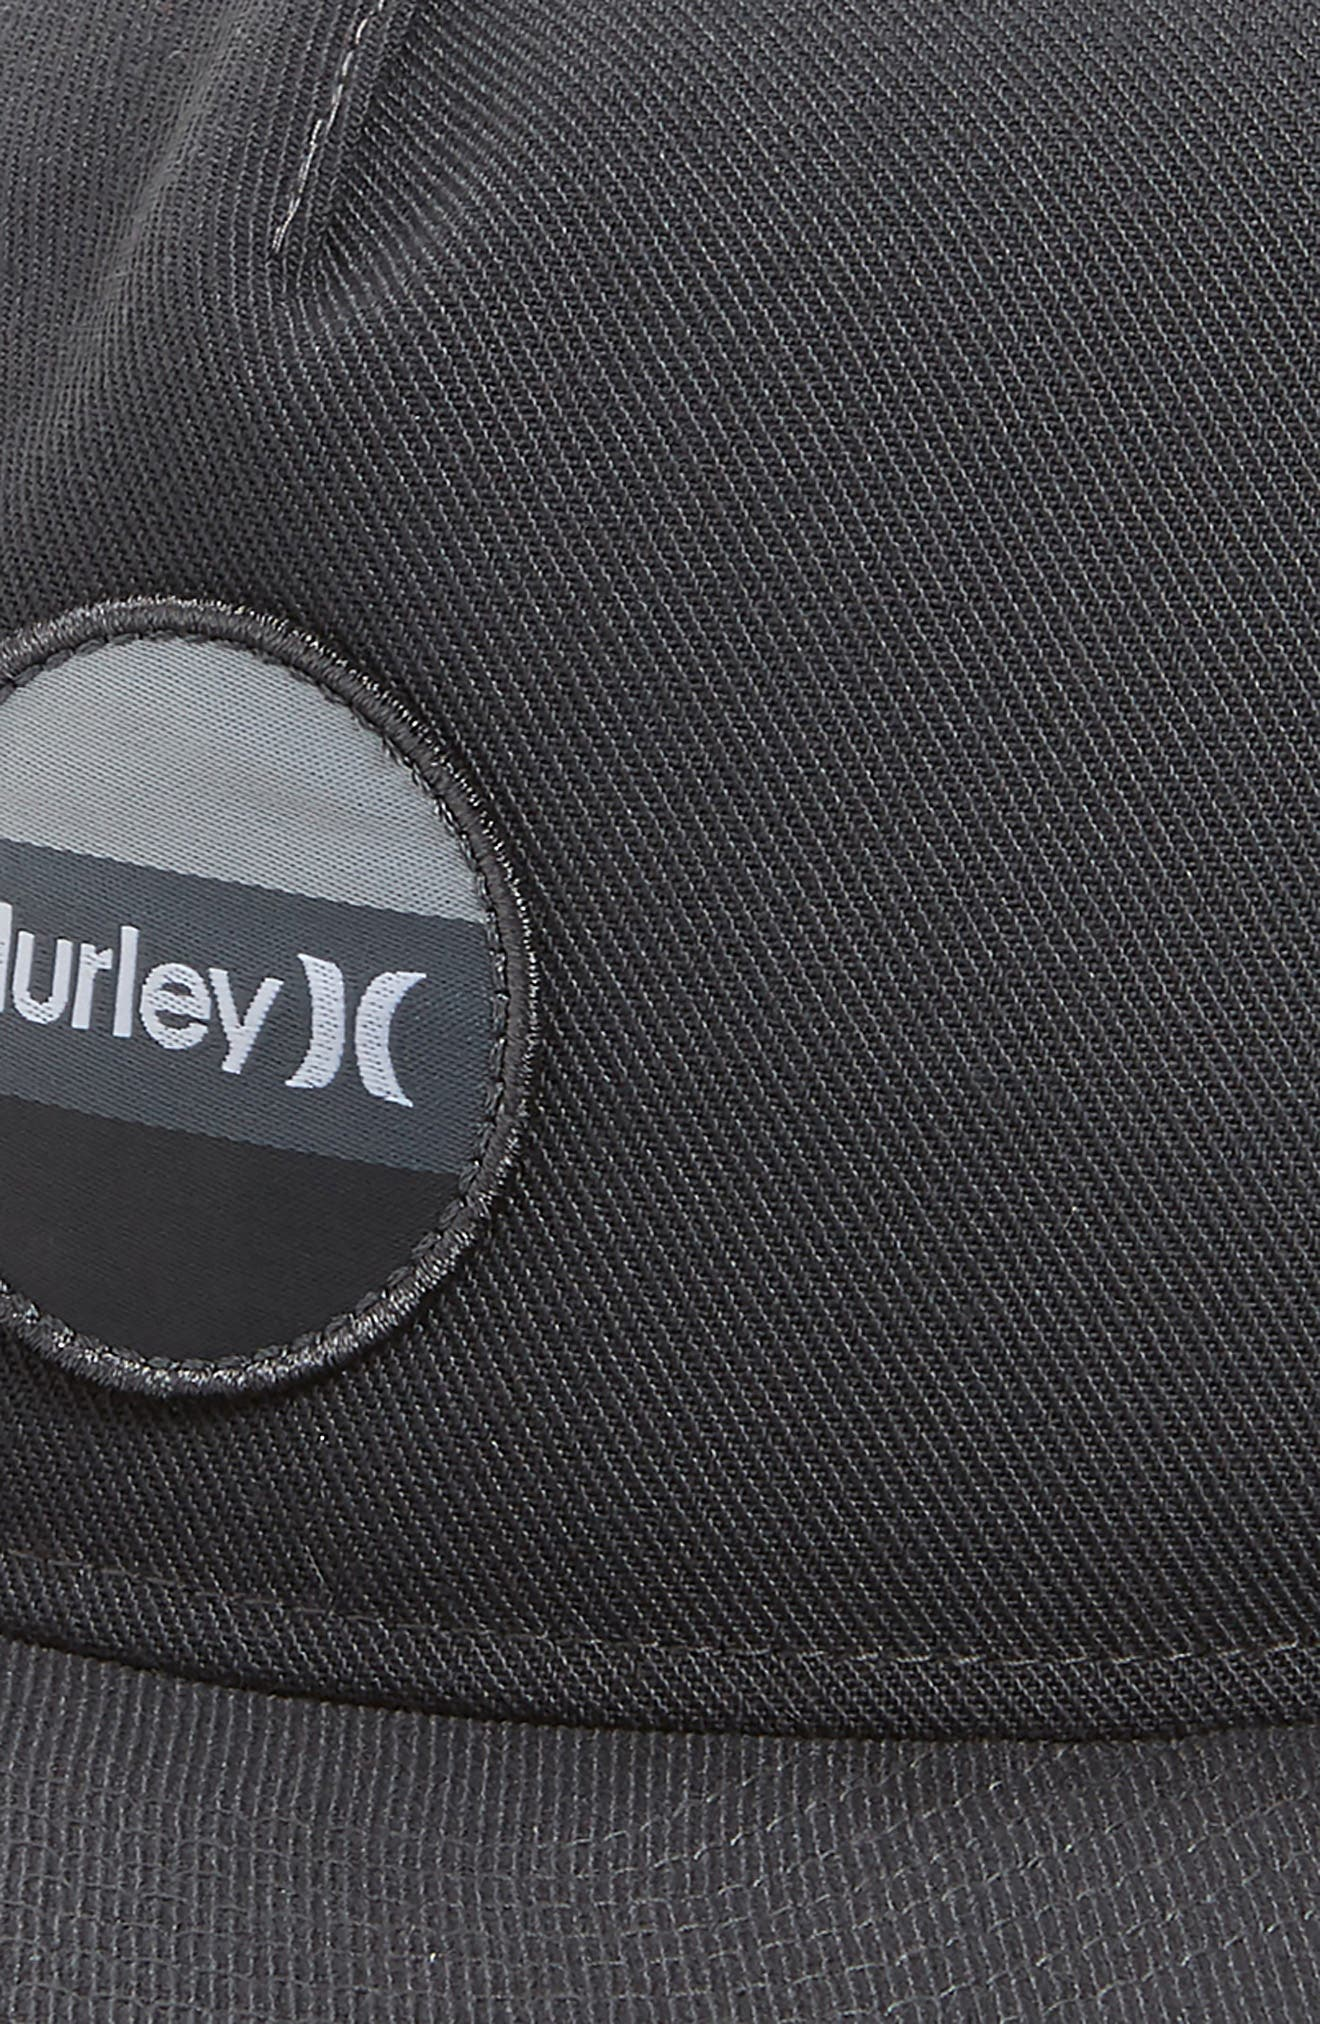 Circular Logo Patch Hat,                             Alternate thumbnail 3, color,                             Anthracite